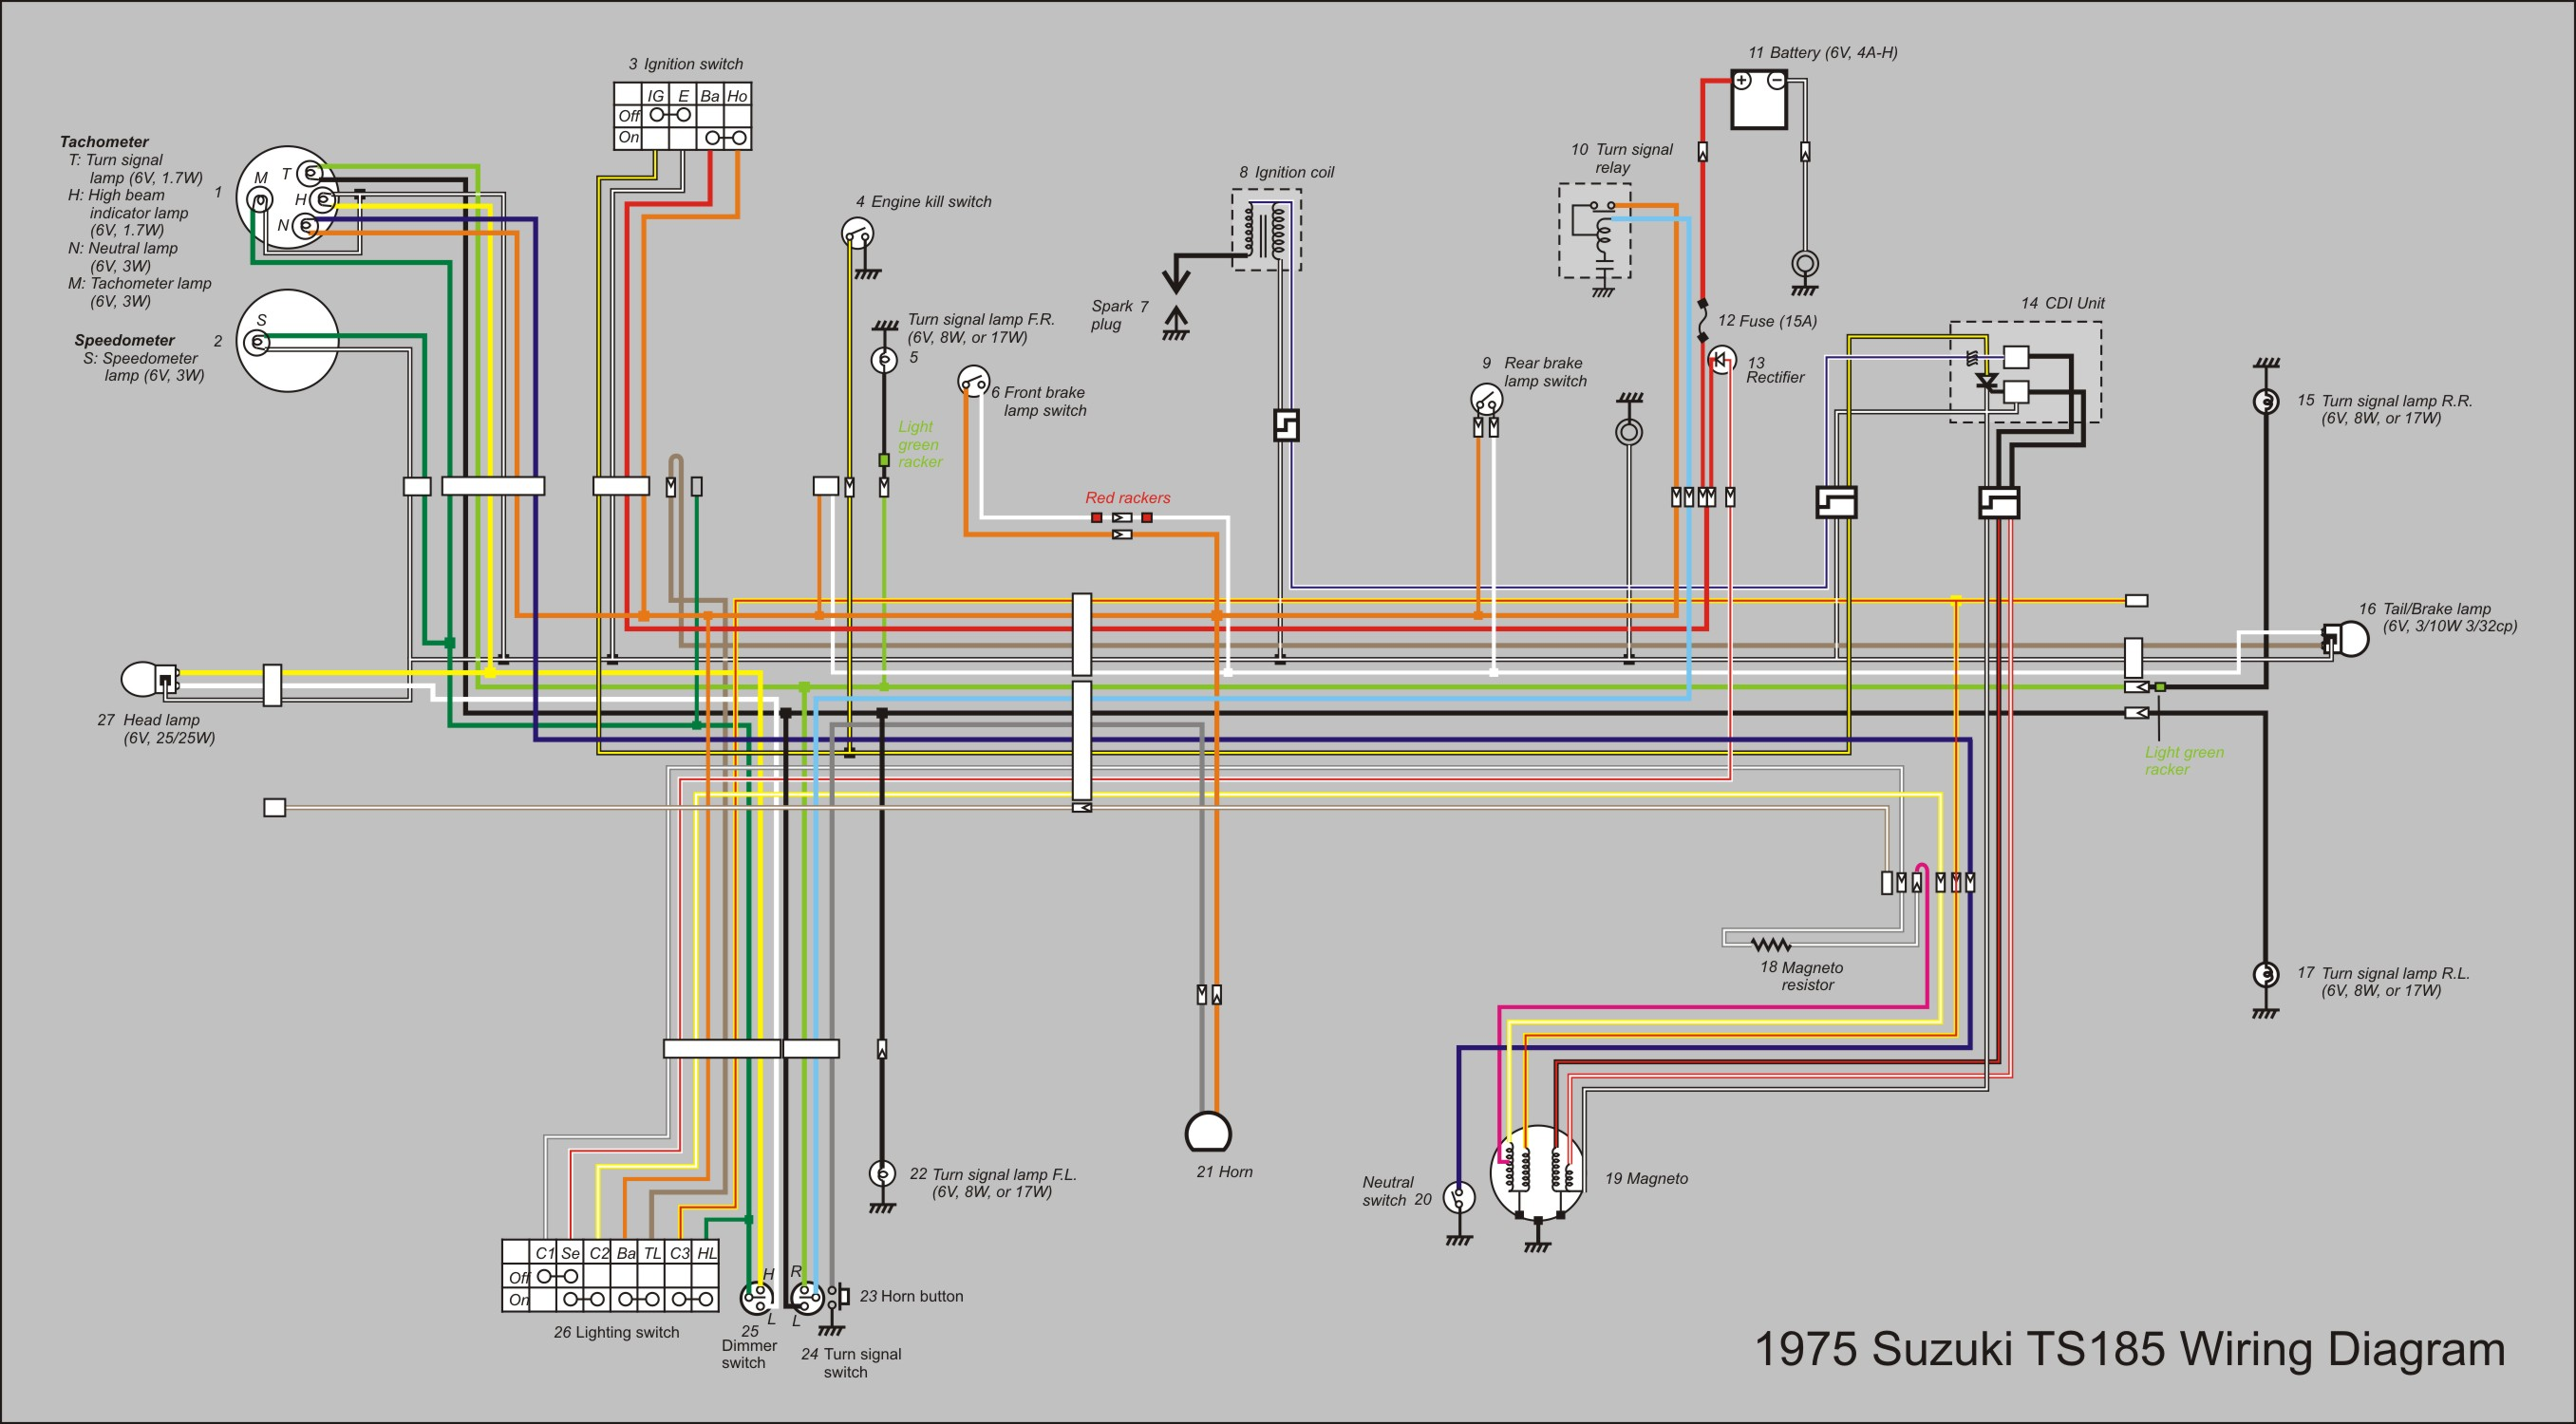 suzuki sierra wiring diagram suzuki wiring diagram suzuki wiring diagrams online file ts185 wiring diagram new jpg